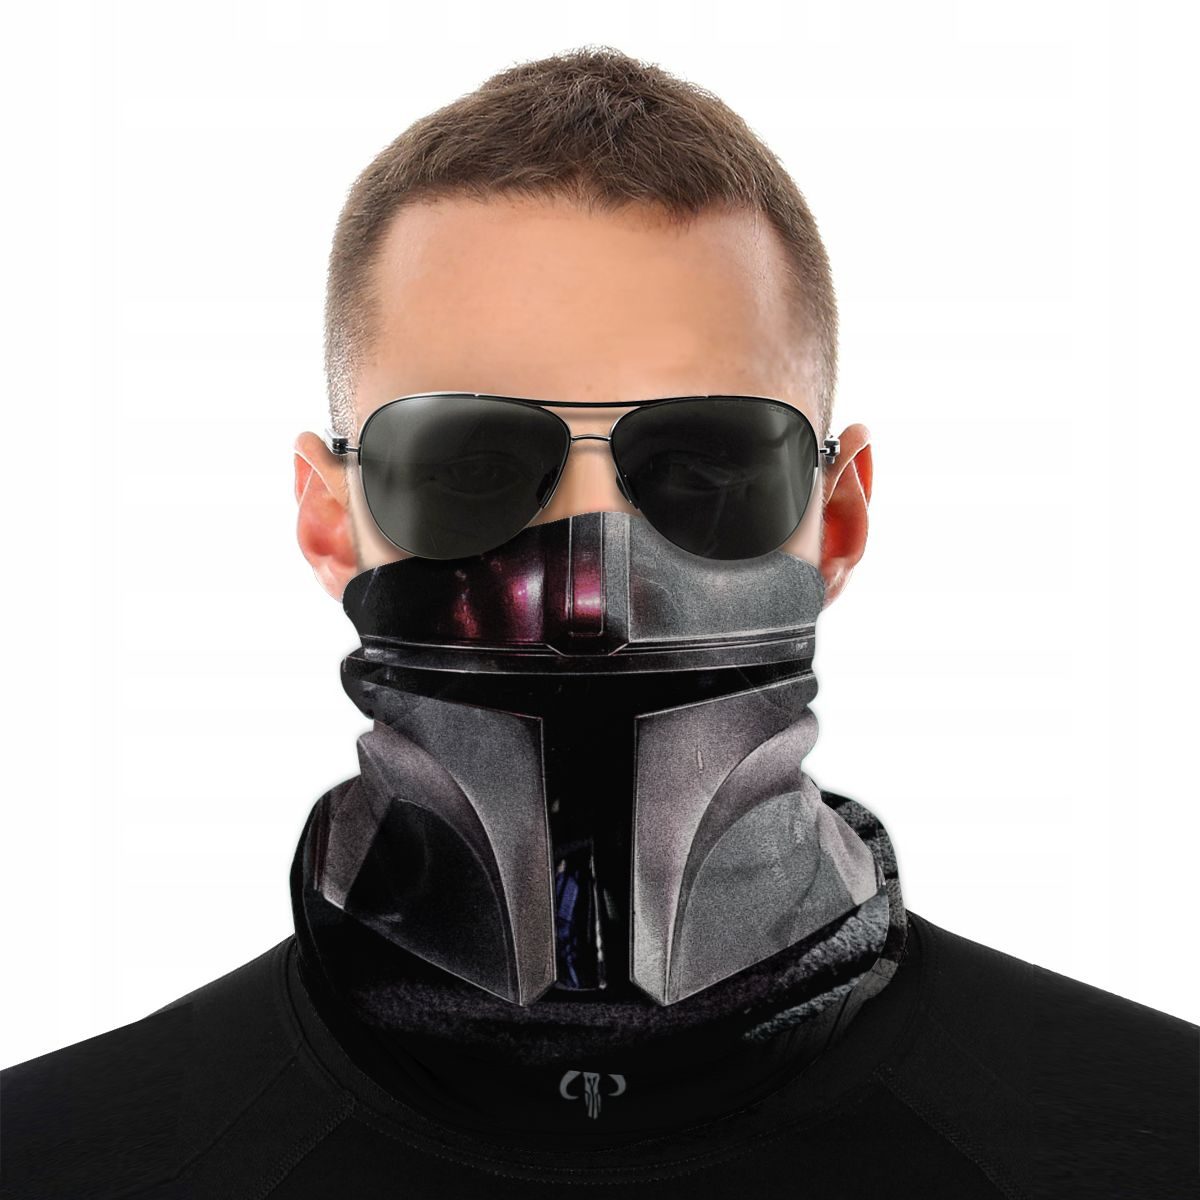 The Mandalorian Scarf Neck Face Mask Men Women Fashion Neck Gaiter Star Wars Balaclava Bandana Windproof Headwear Biking Camping